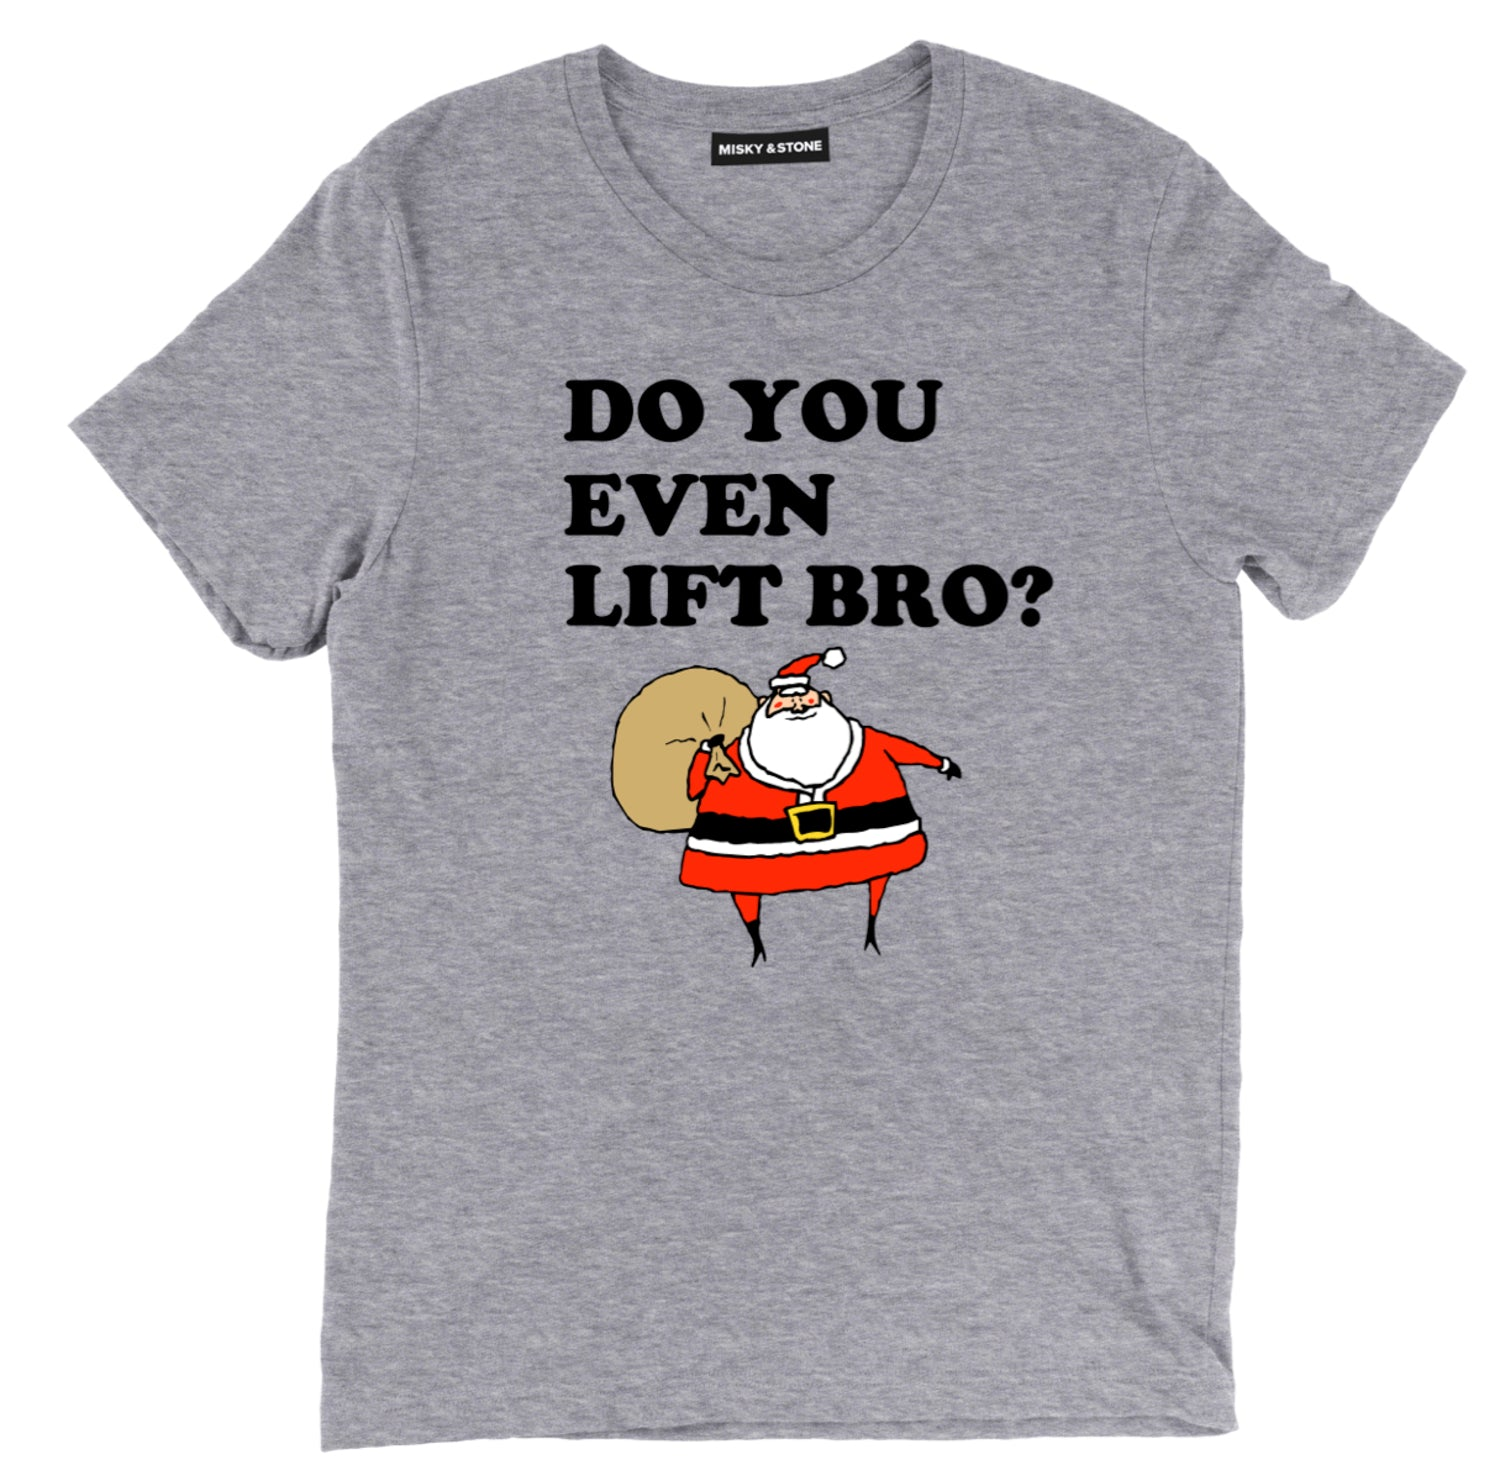 do you even lift bro tee, santa lifting tee,, funny santa tee, x mas funny santa shirtchristmas shirts, christmas t shirts, christmas tees, christmas tee shirts, funny christmas shirts, xmas t shirts, funny christmas t shirts, cute christmas shirts, ugly christmas t shirts,